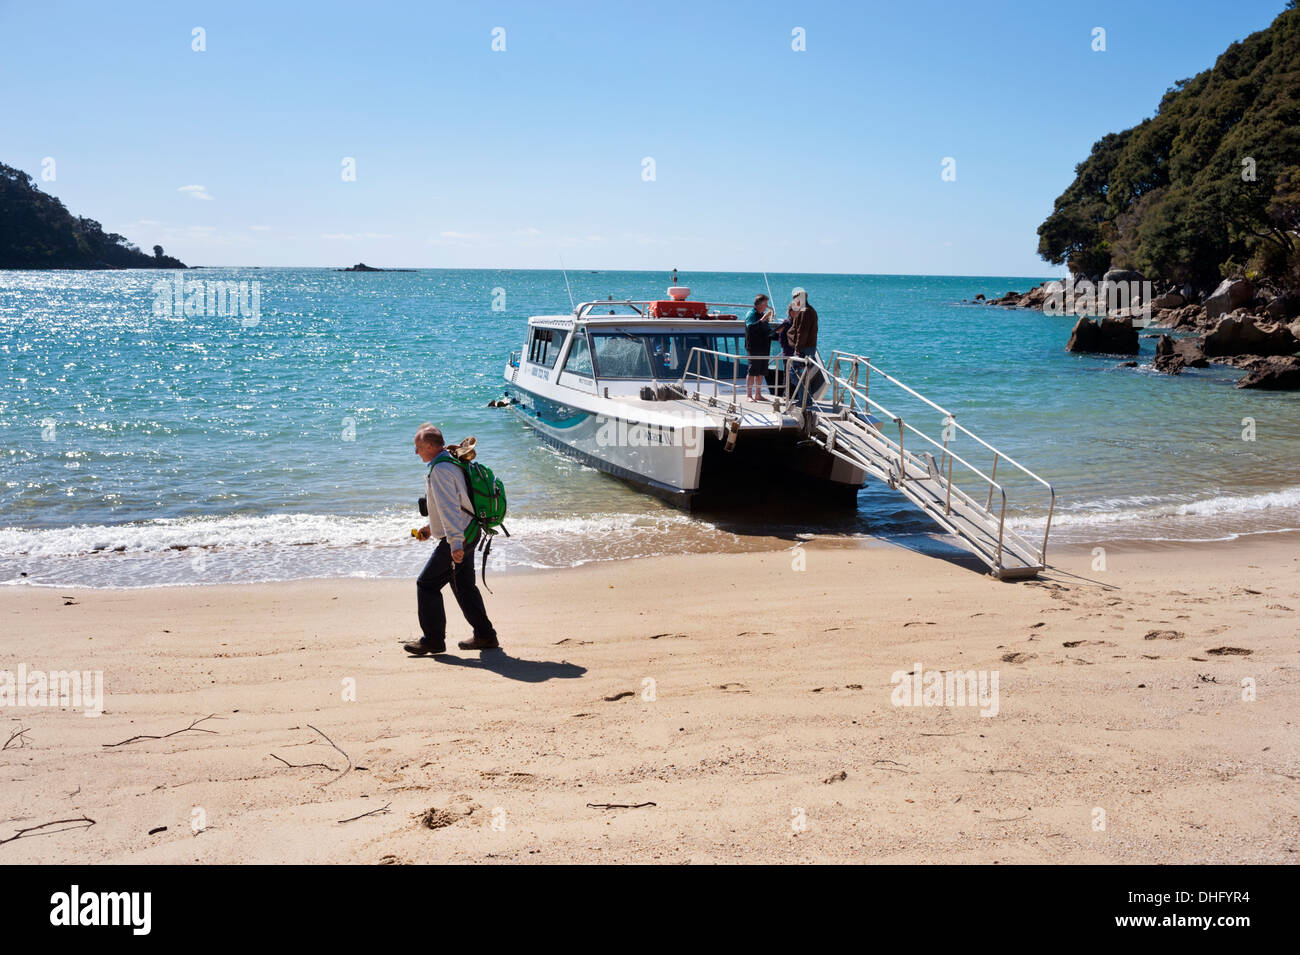 Water taxi serving the Coastal Track in the Abel Tasman National Park, seen at Medlands Bay, South Island, New Zealand. - Stock Image